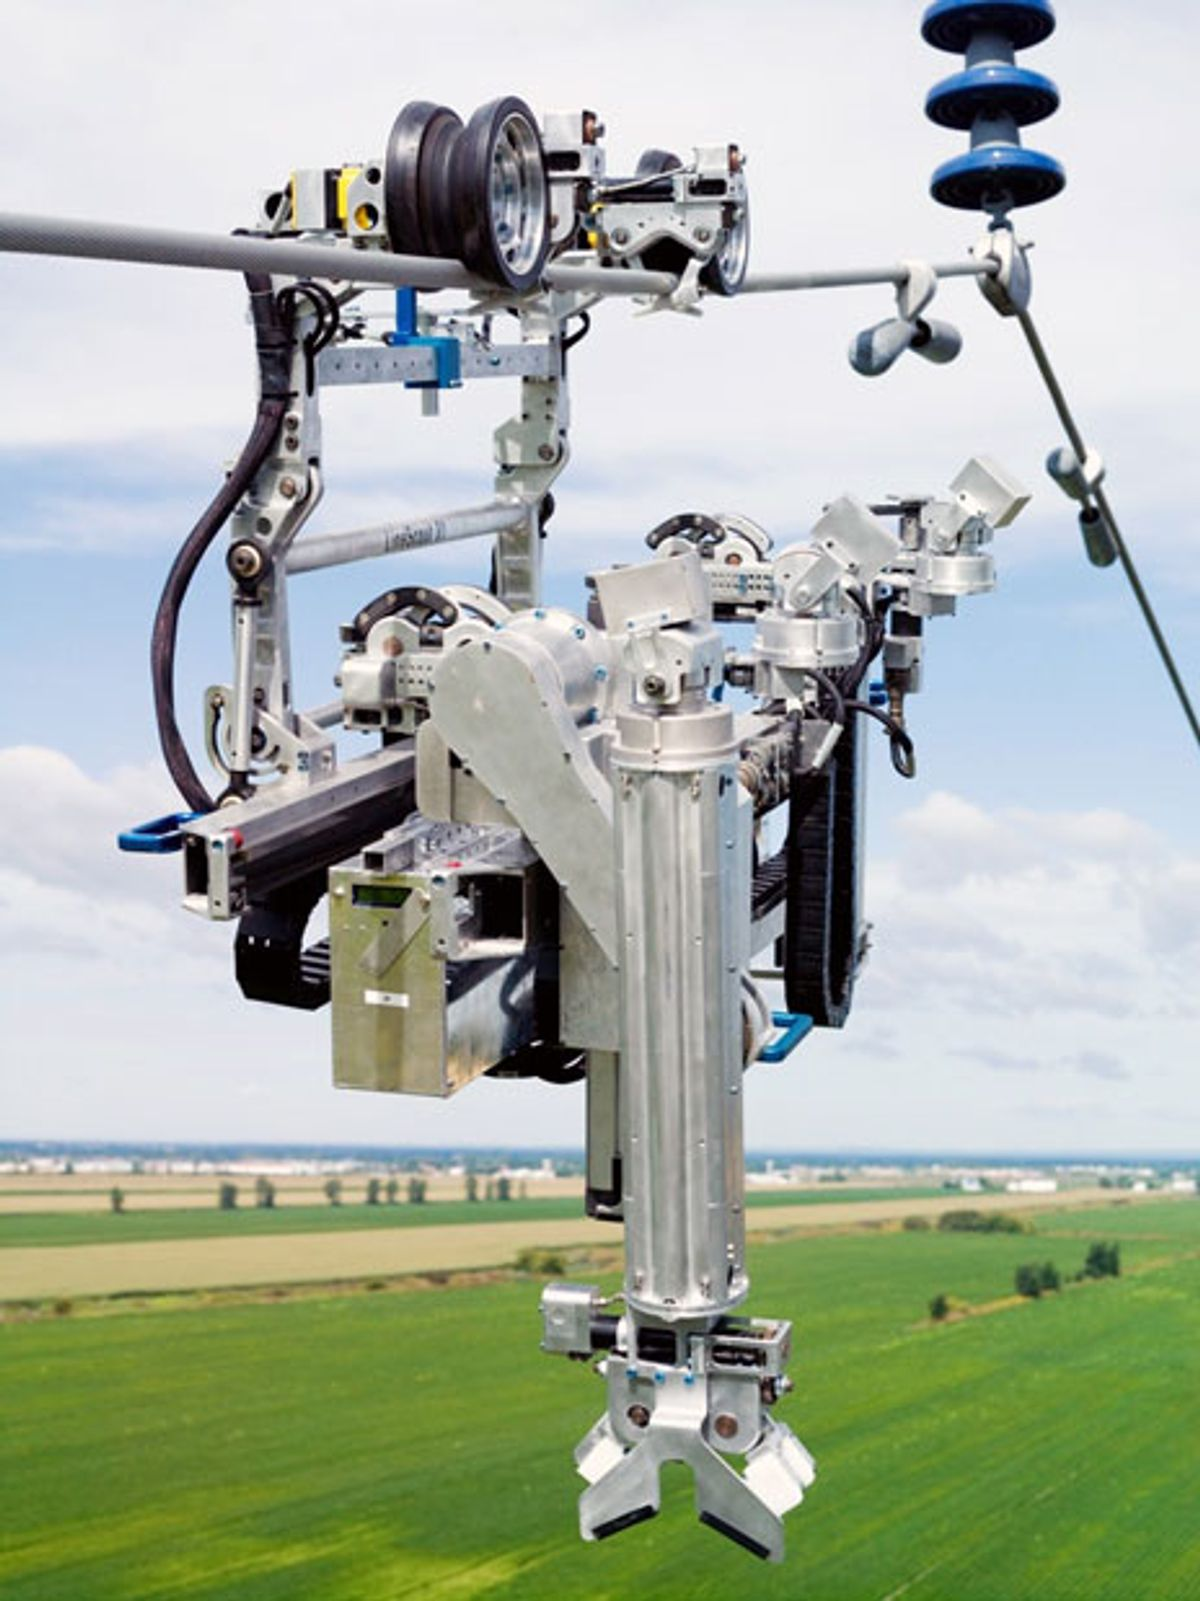 LineScout Robot Climbs on Live Power Lines to Inspect Them